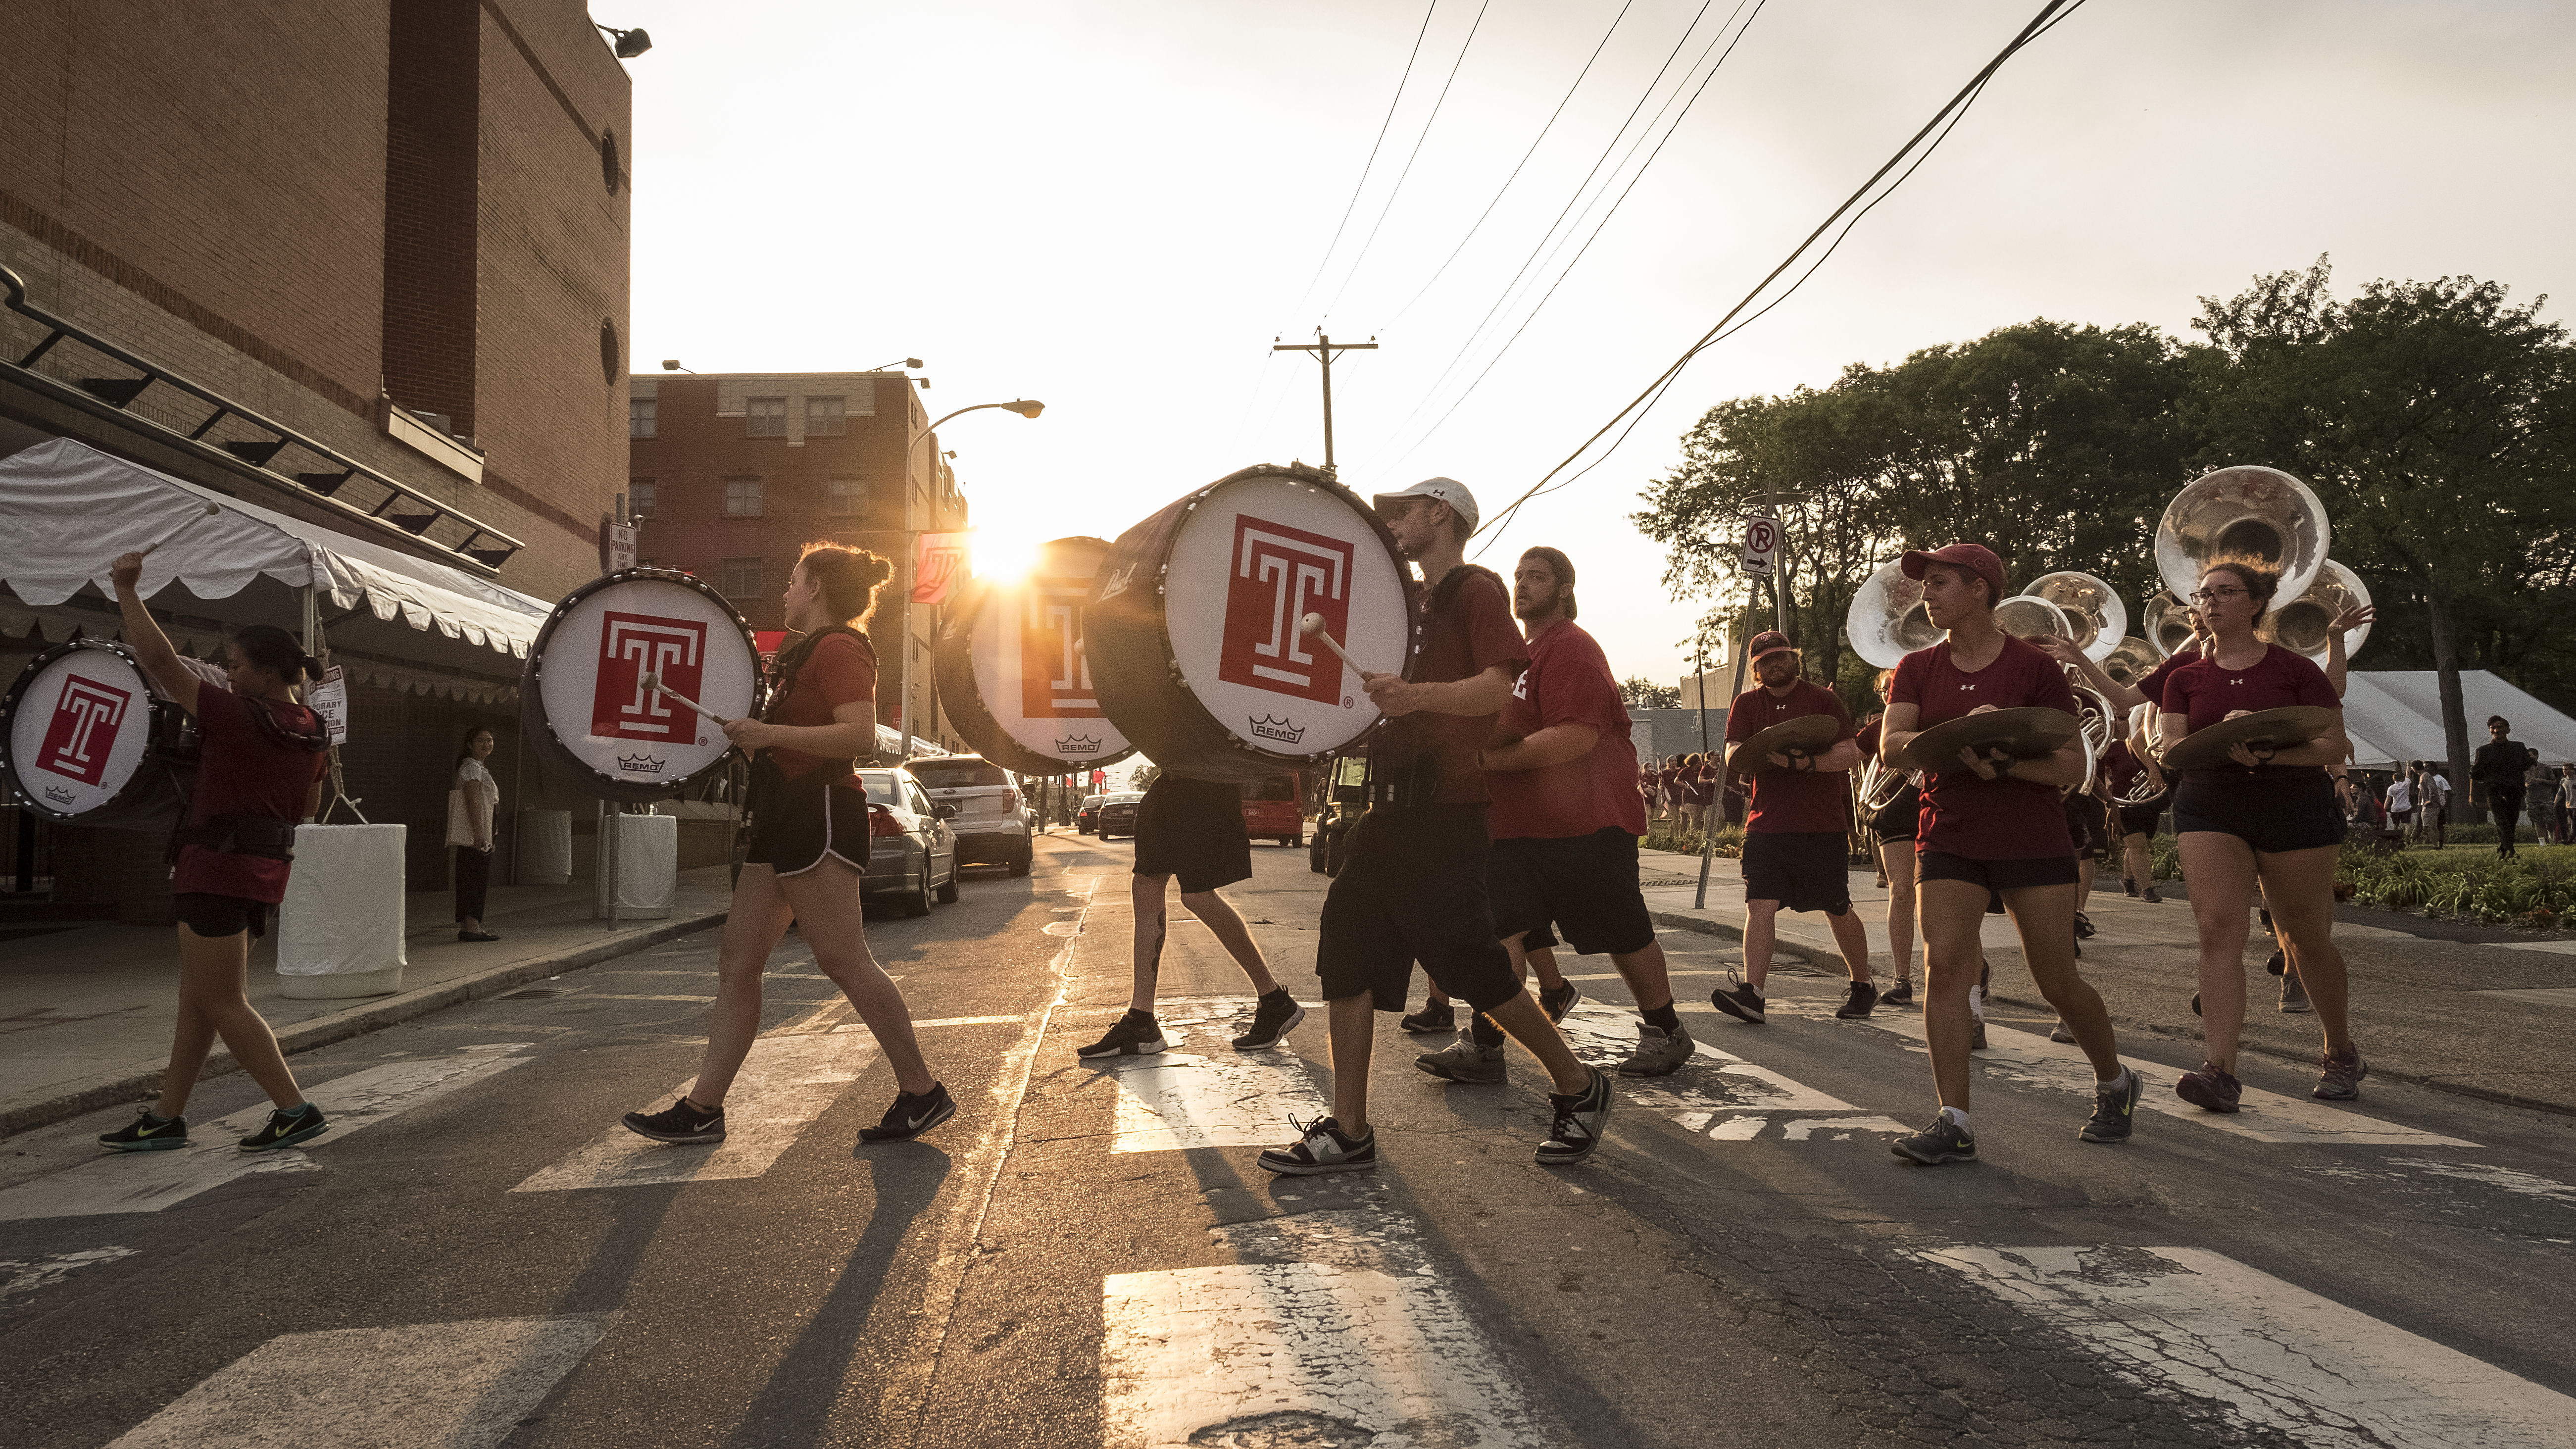 Temple marching band members perform as they walk across a street on Temple's campus during Welcome Week.